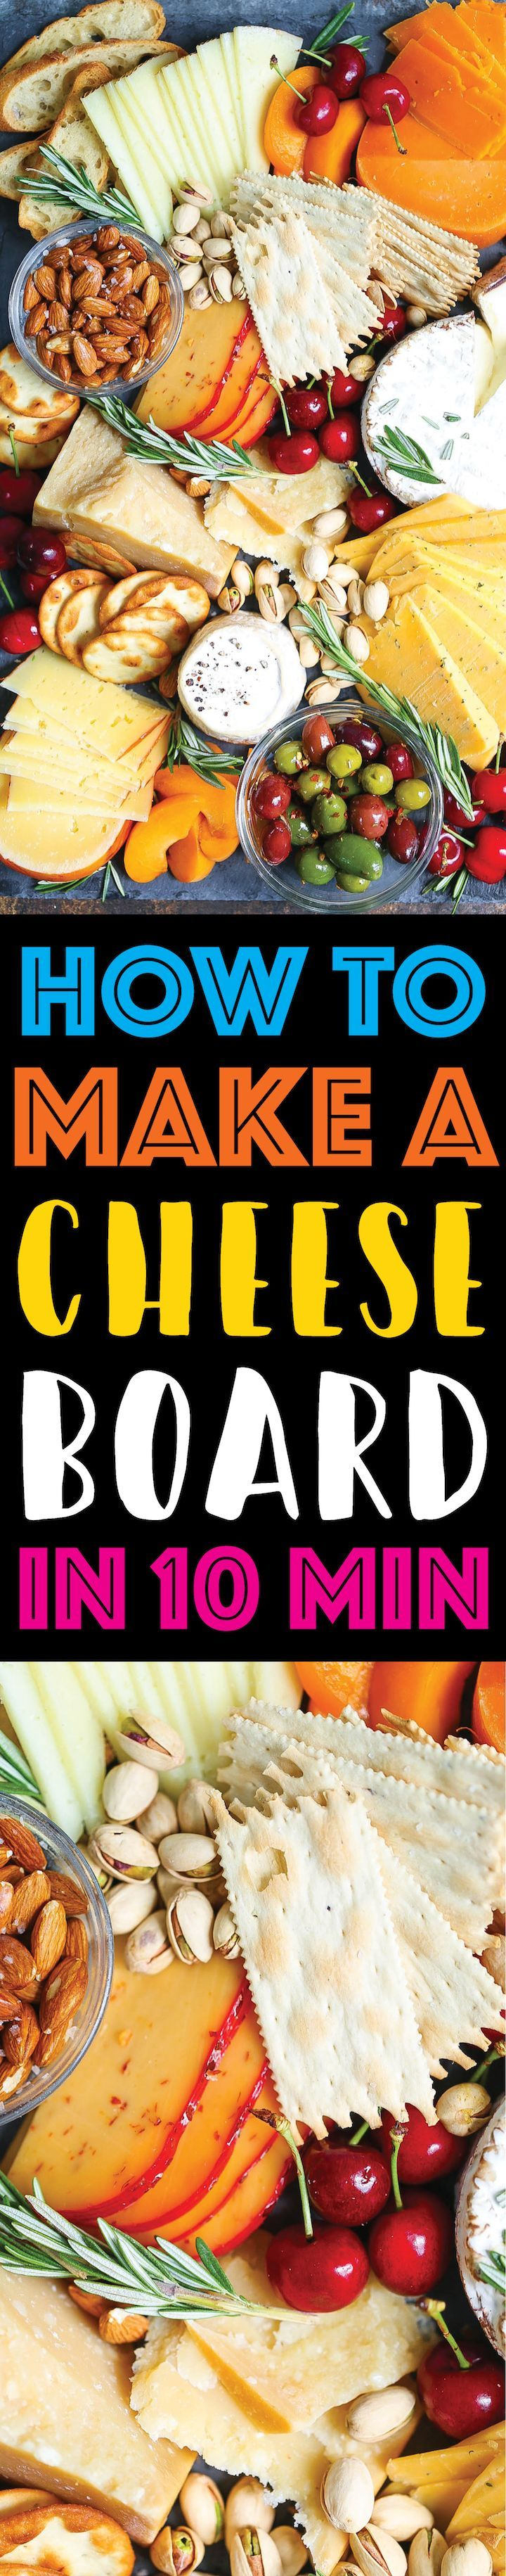 How to Make an Easy Cheese Board in 10 Minutes - Here are the tips and tricks on how to make a KILLER cheese board for National Dairy Month. You can choose just about any cheese on the market because they're responsibly produced, which means you get a better, fresher product!  So easy, beautiful and well-balanced! @DairyGood #ad #UndeniablyDairy